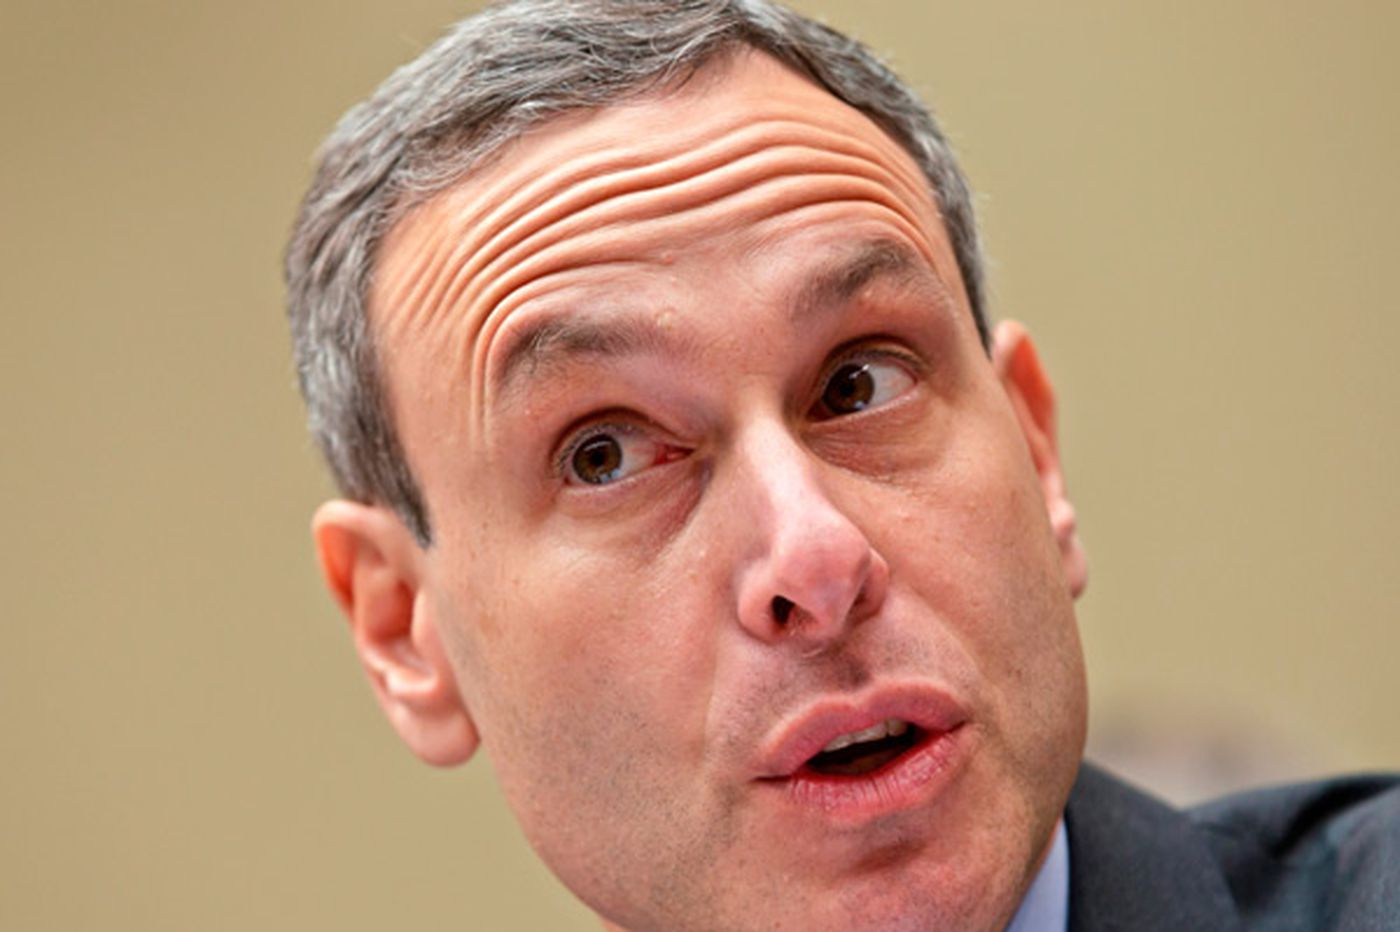 Critics of feds also on IRS list